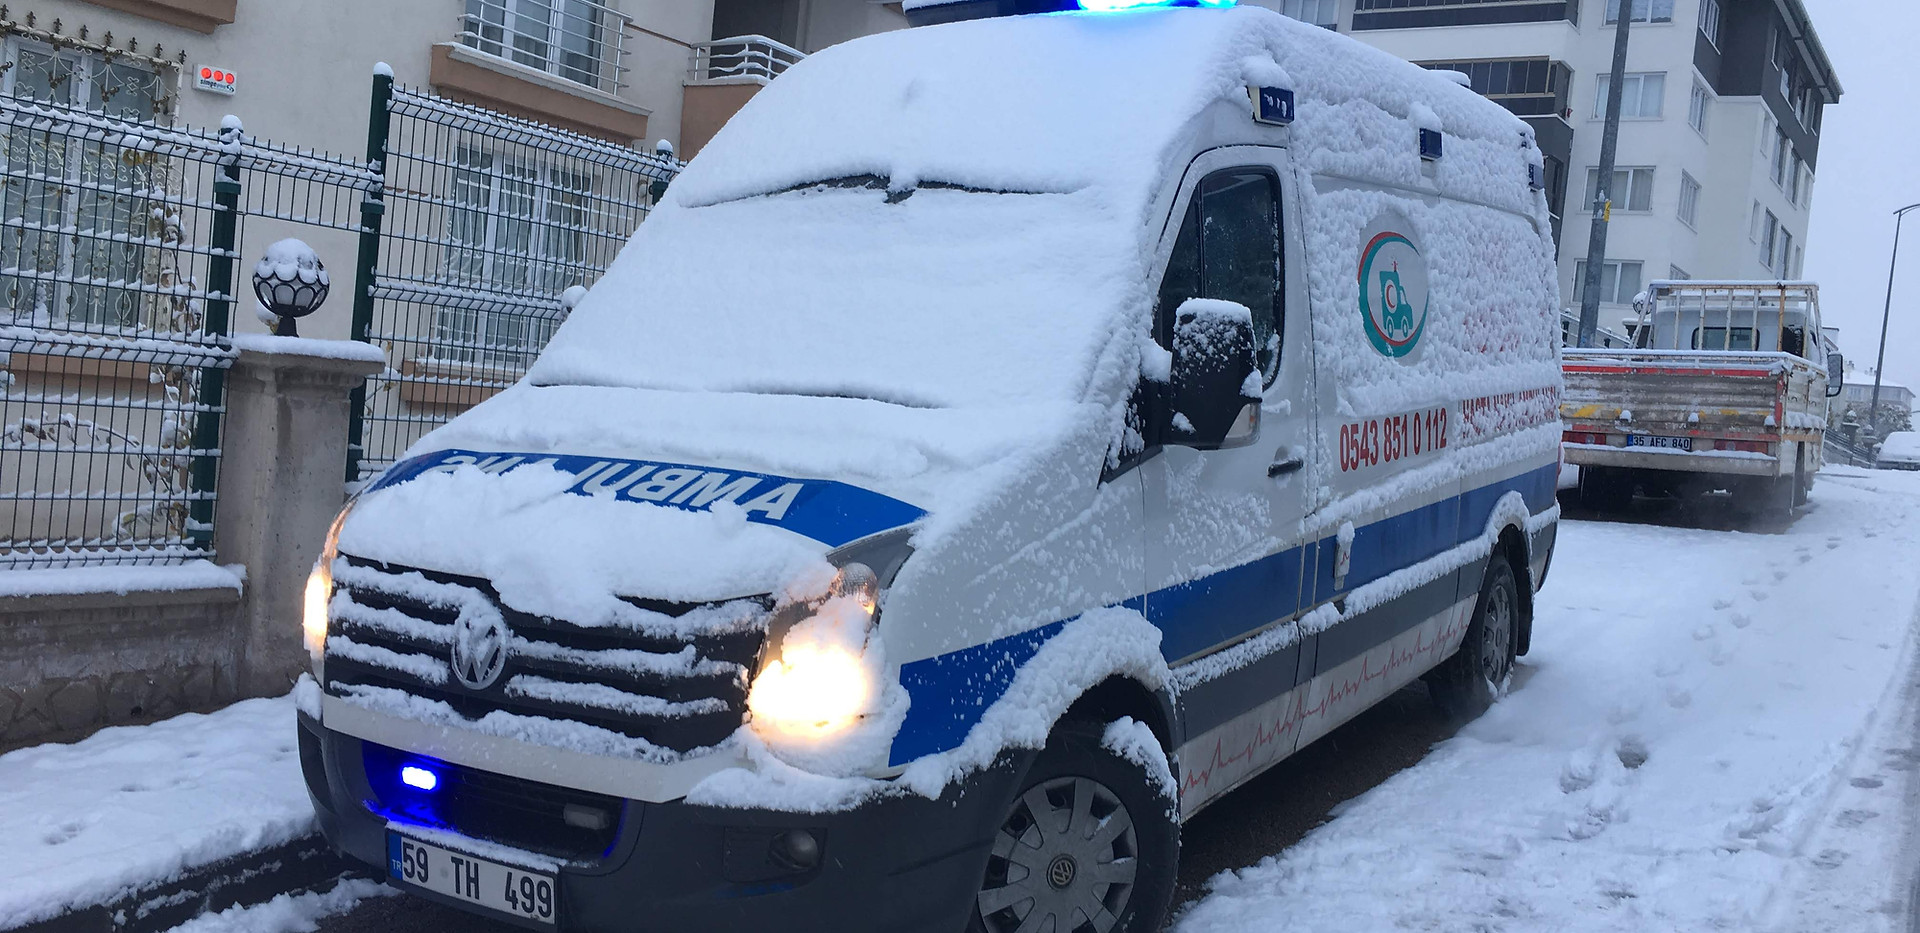 karlı ambulans